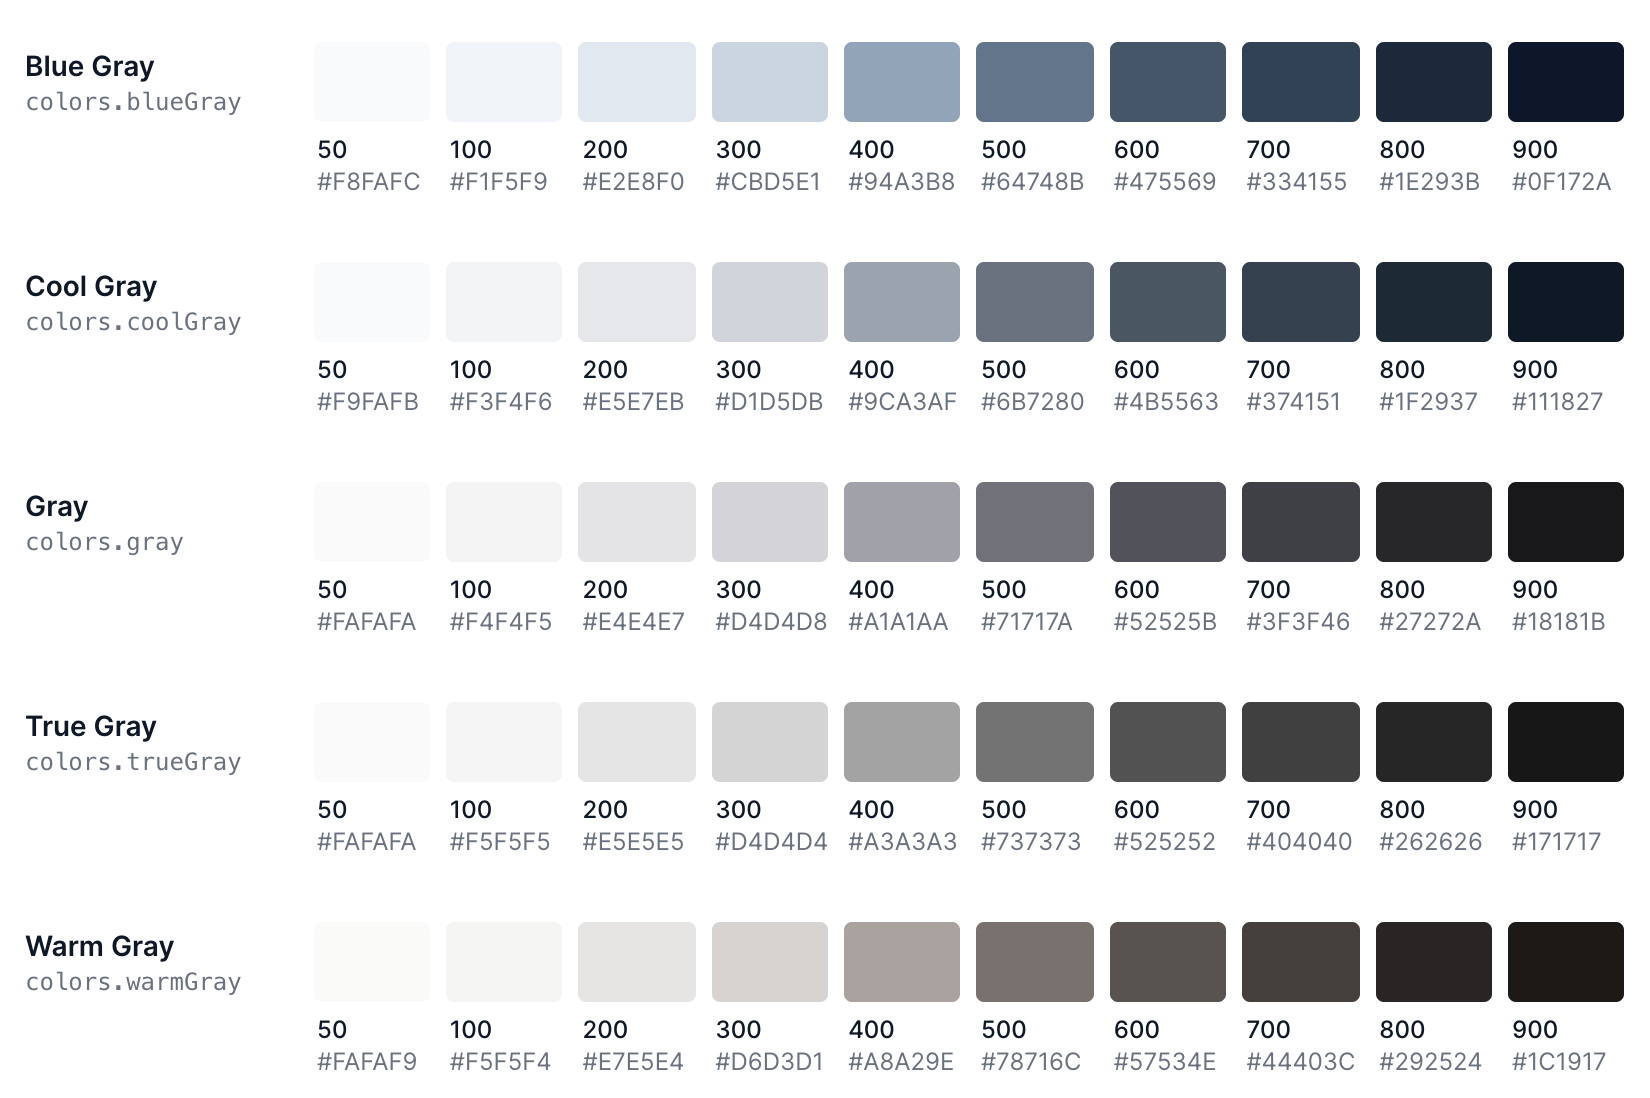 TailwindCSS with extended colour palette